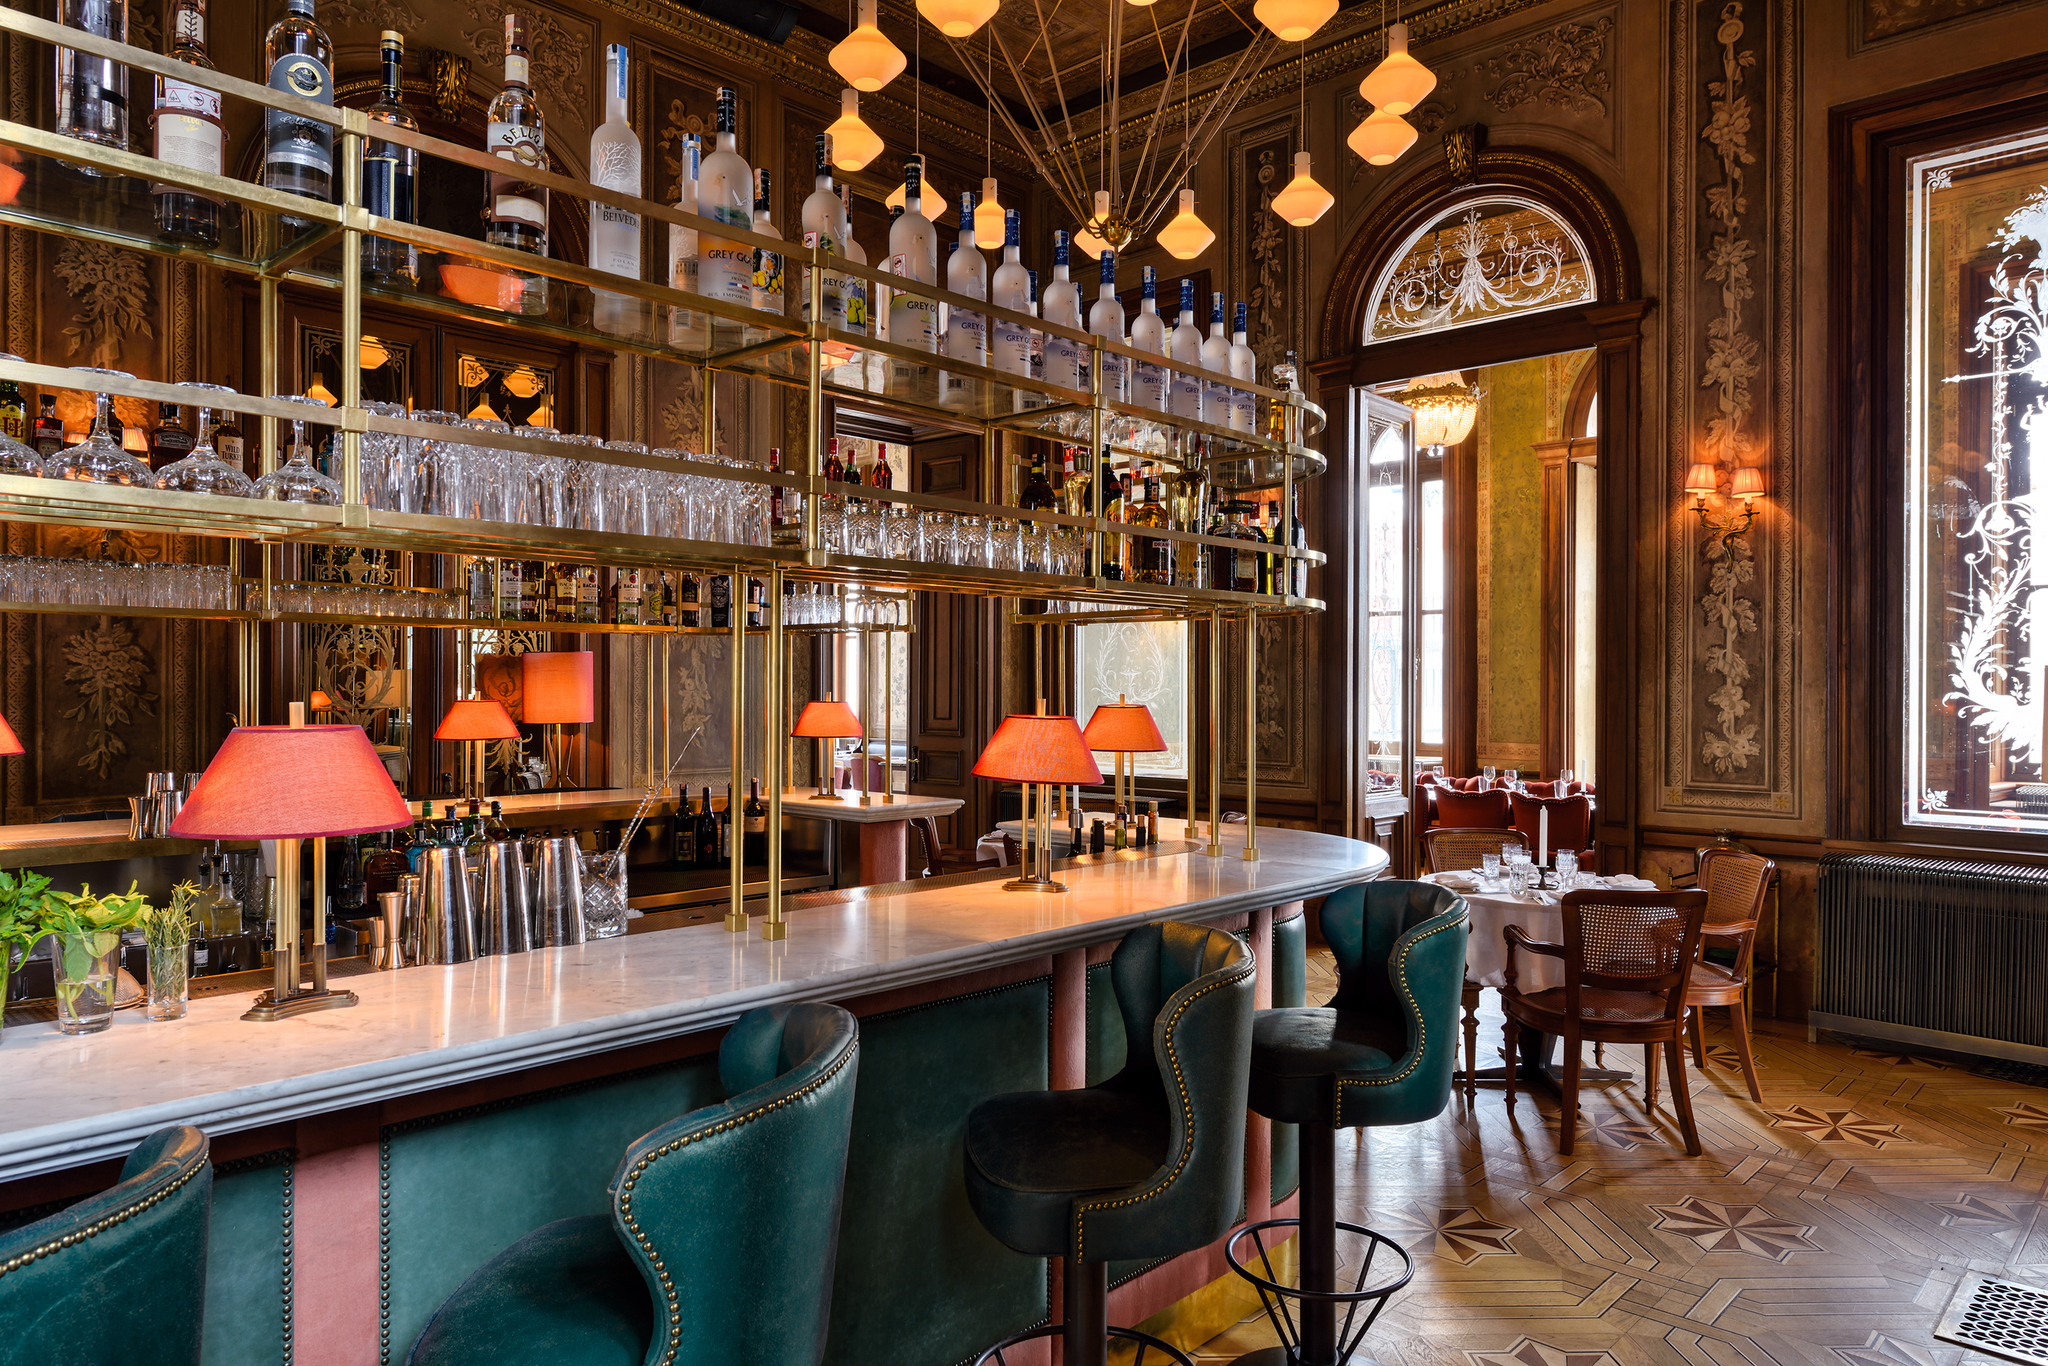 Refined interiors in a modern bar that is sheltered in a heritage building with bold lighting